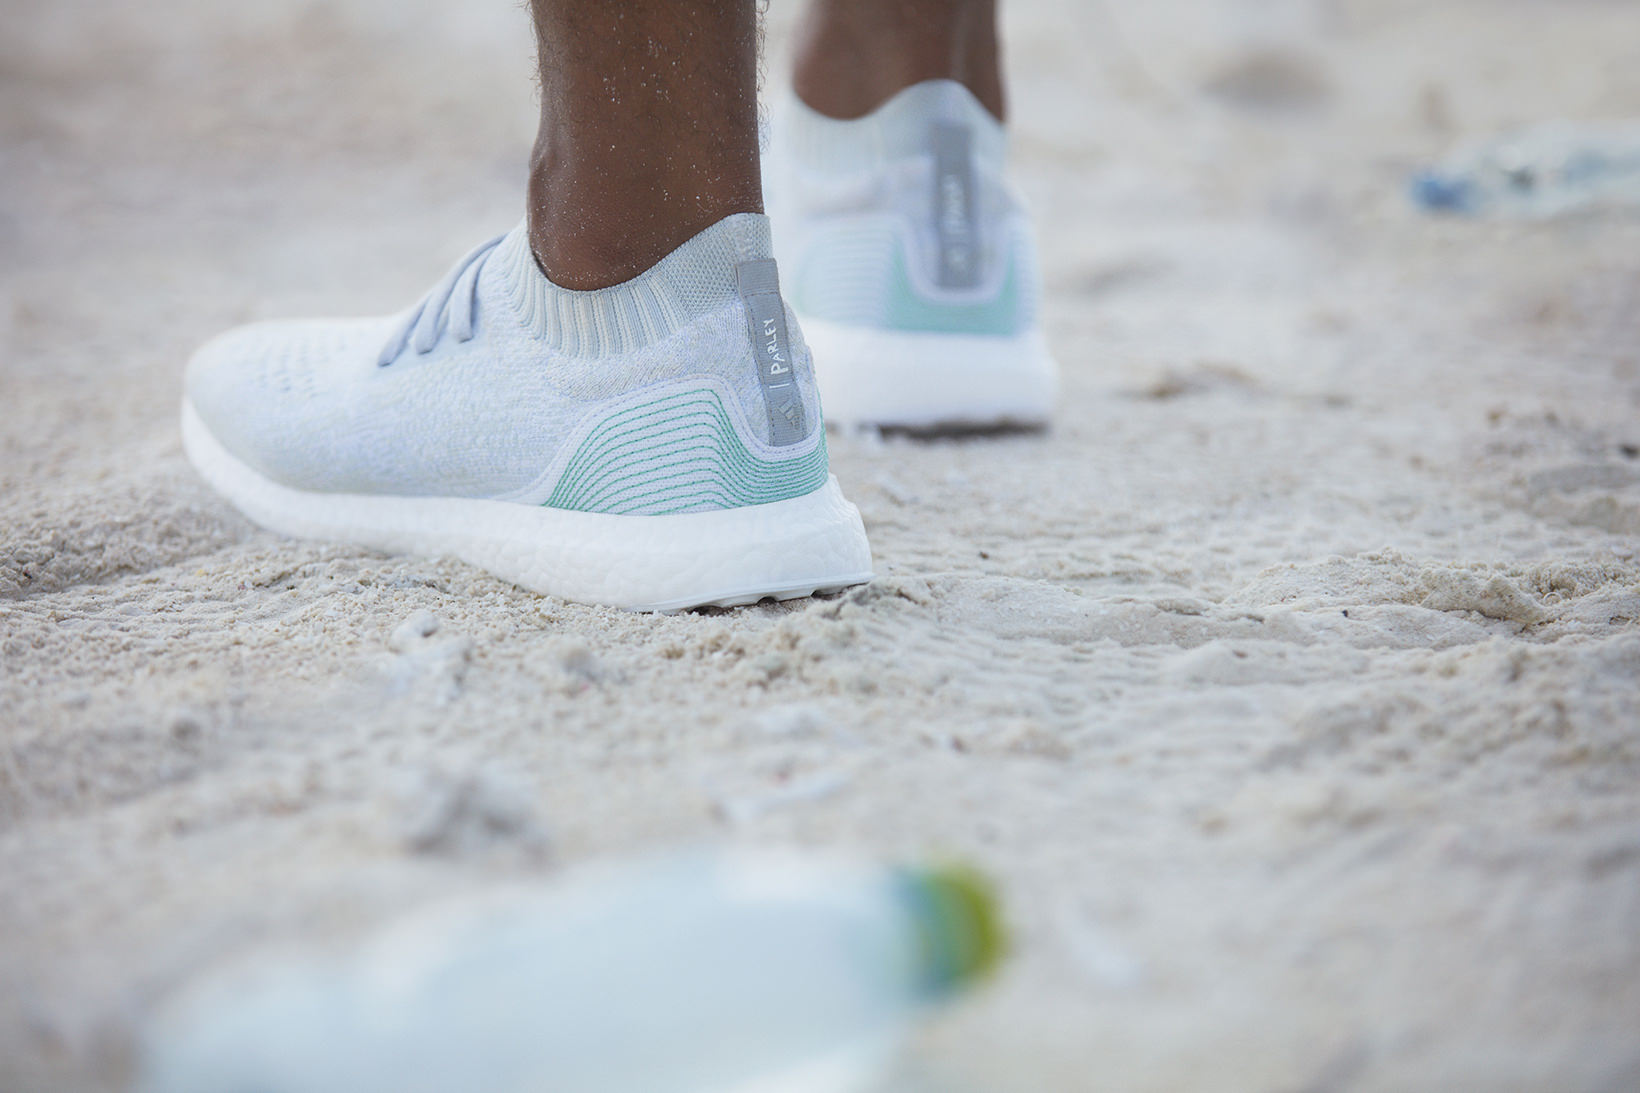 ultraboost-uncaged-parley-sneakers-2